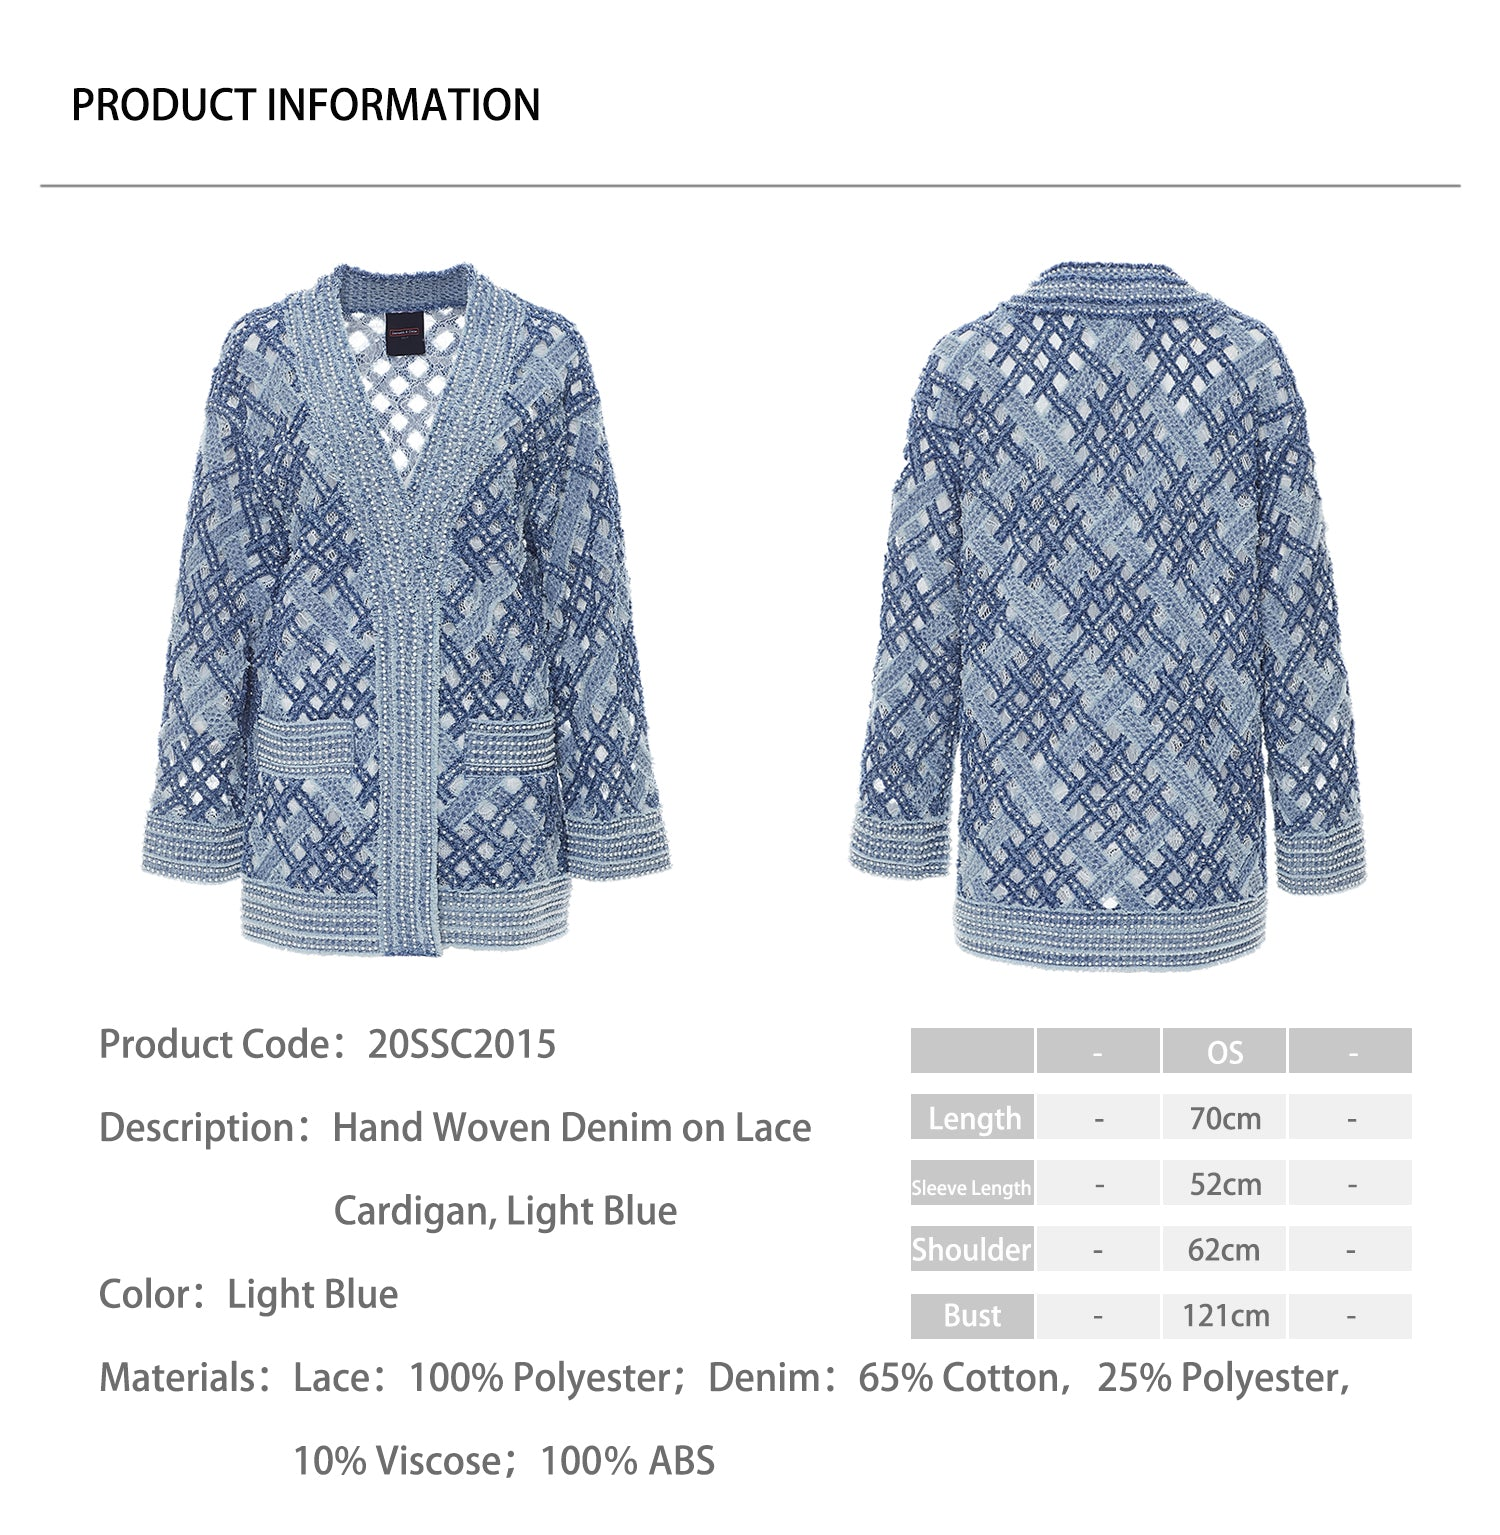 Hand Woven Denim on Lace Cardigan, Light Blue